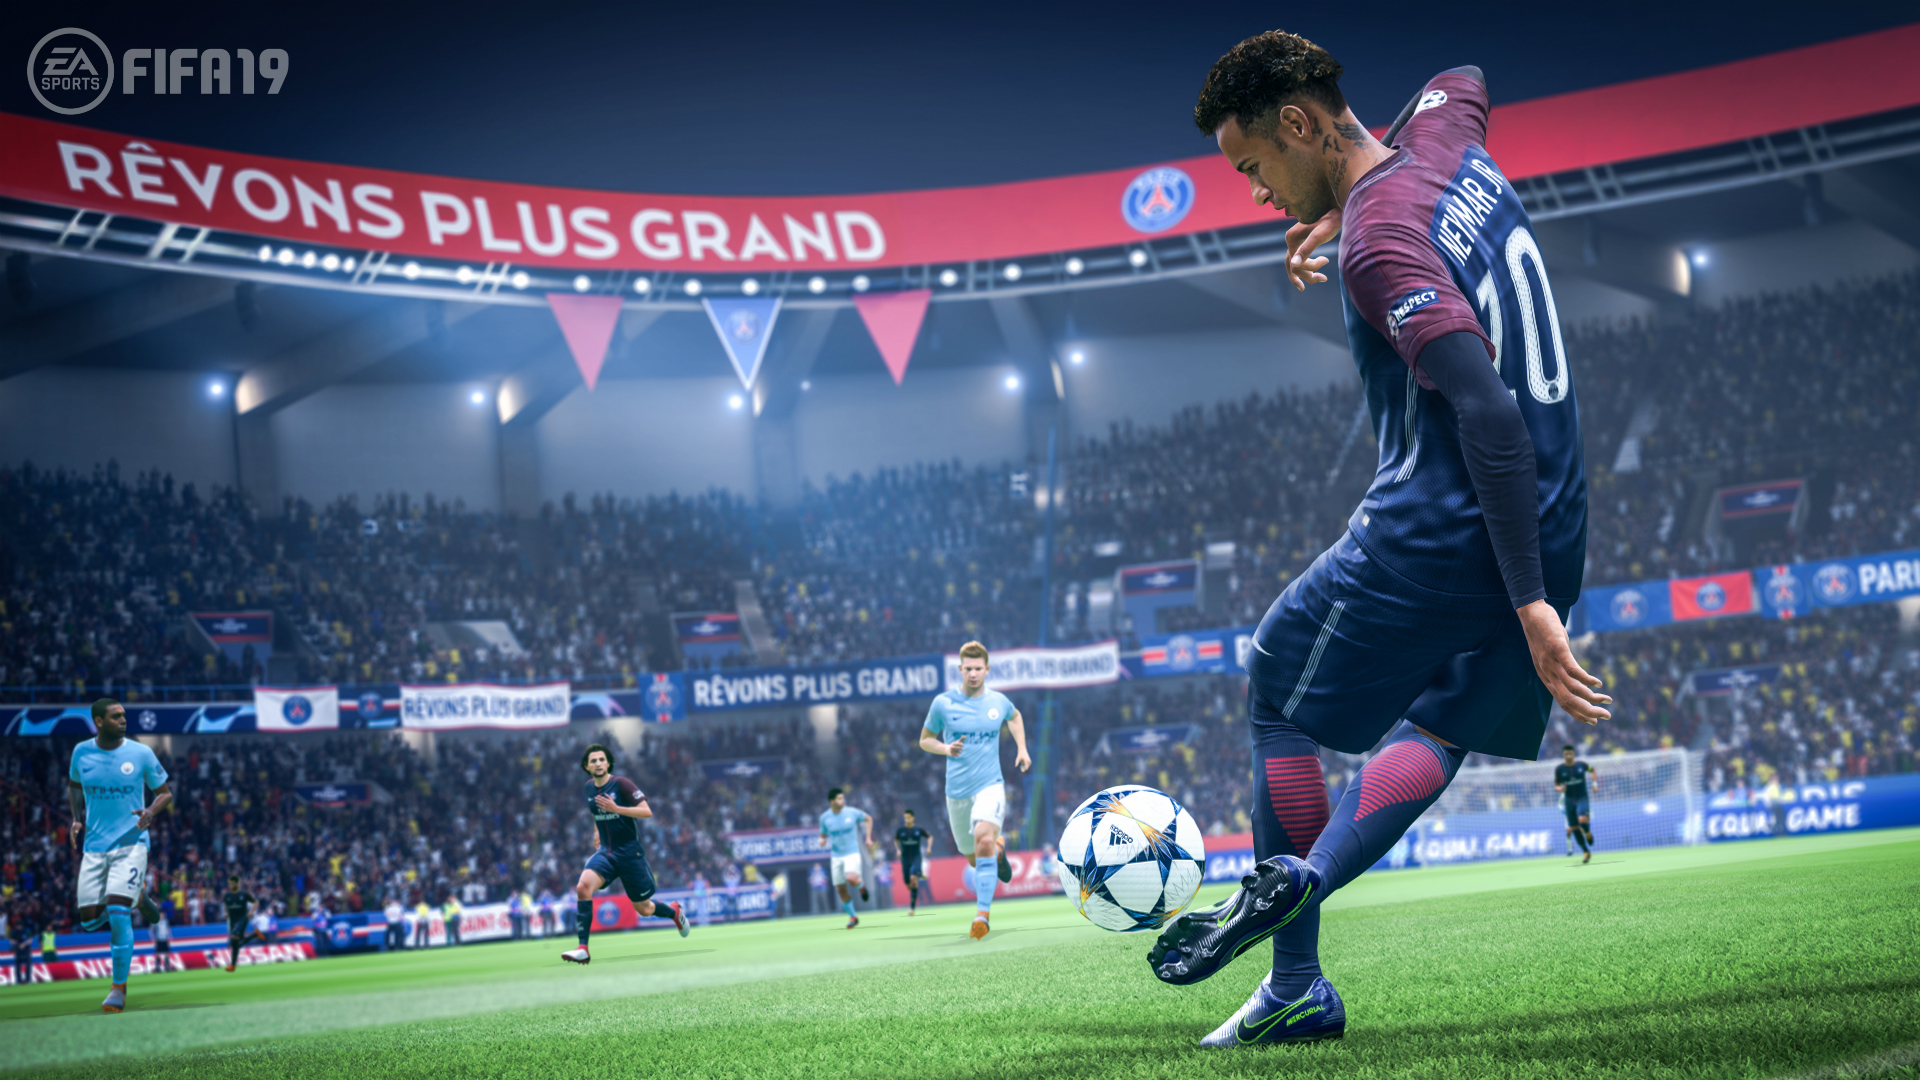 Image result for fifa 19 neymar jr